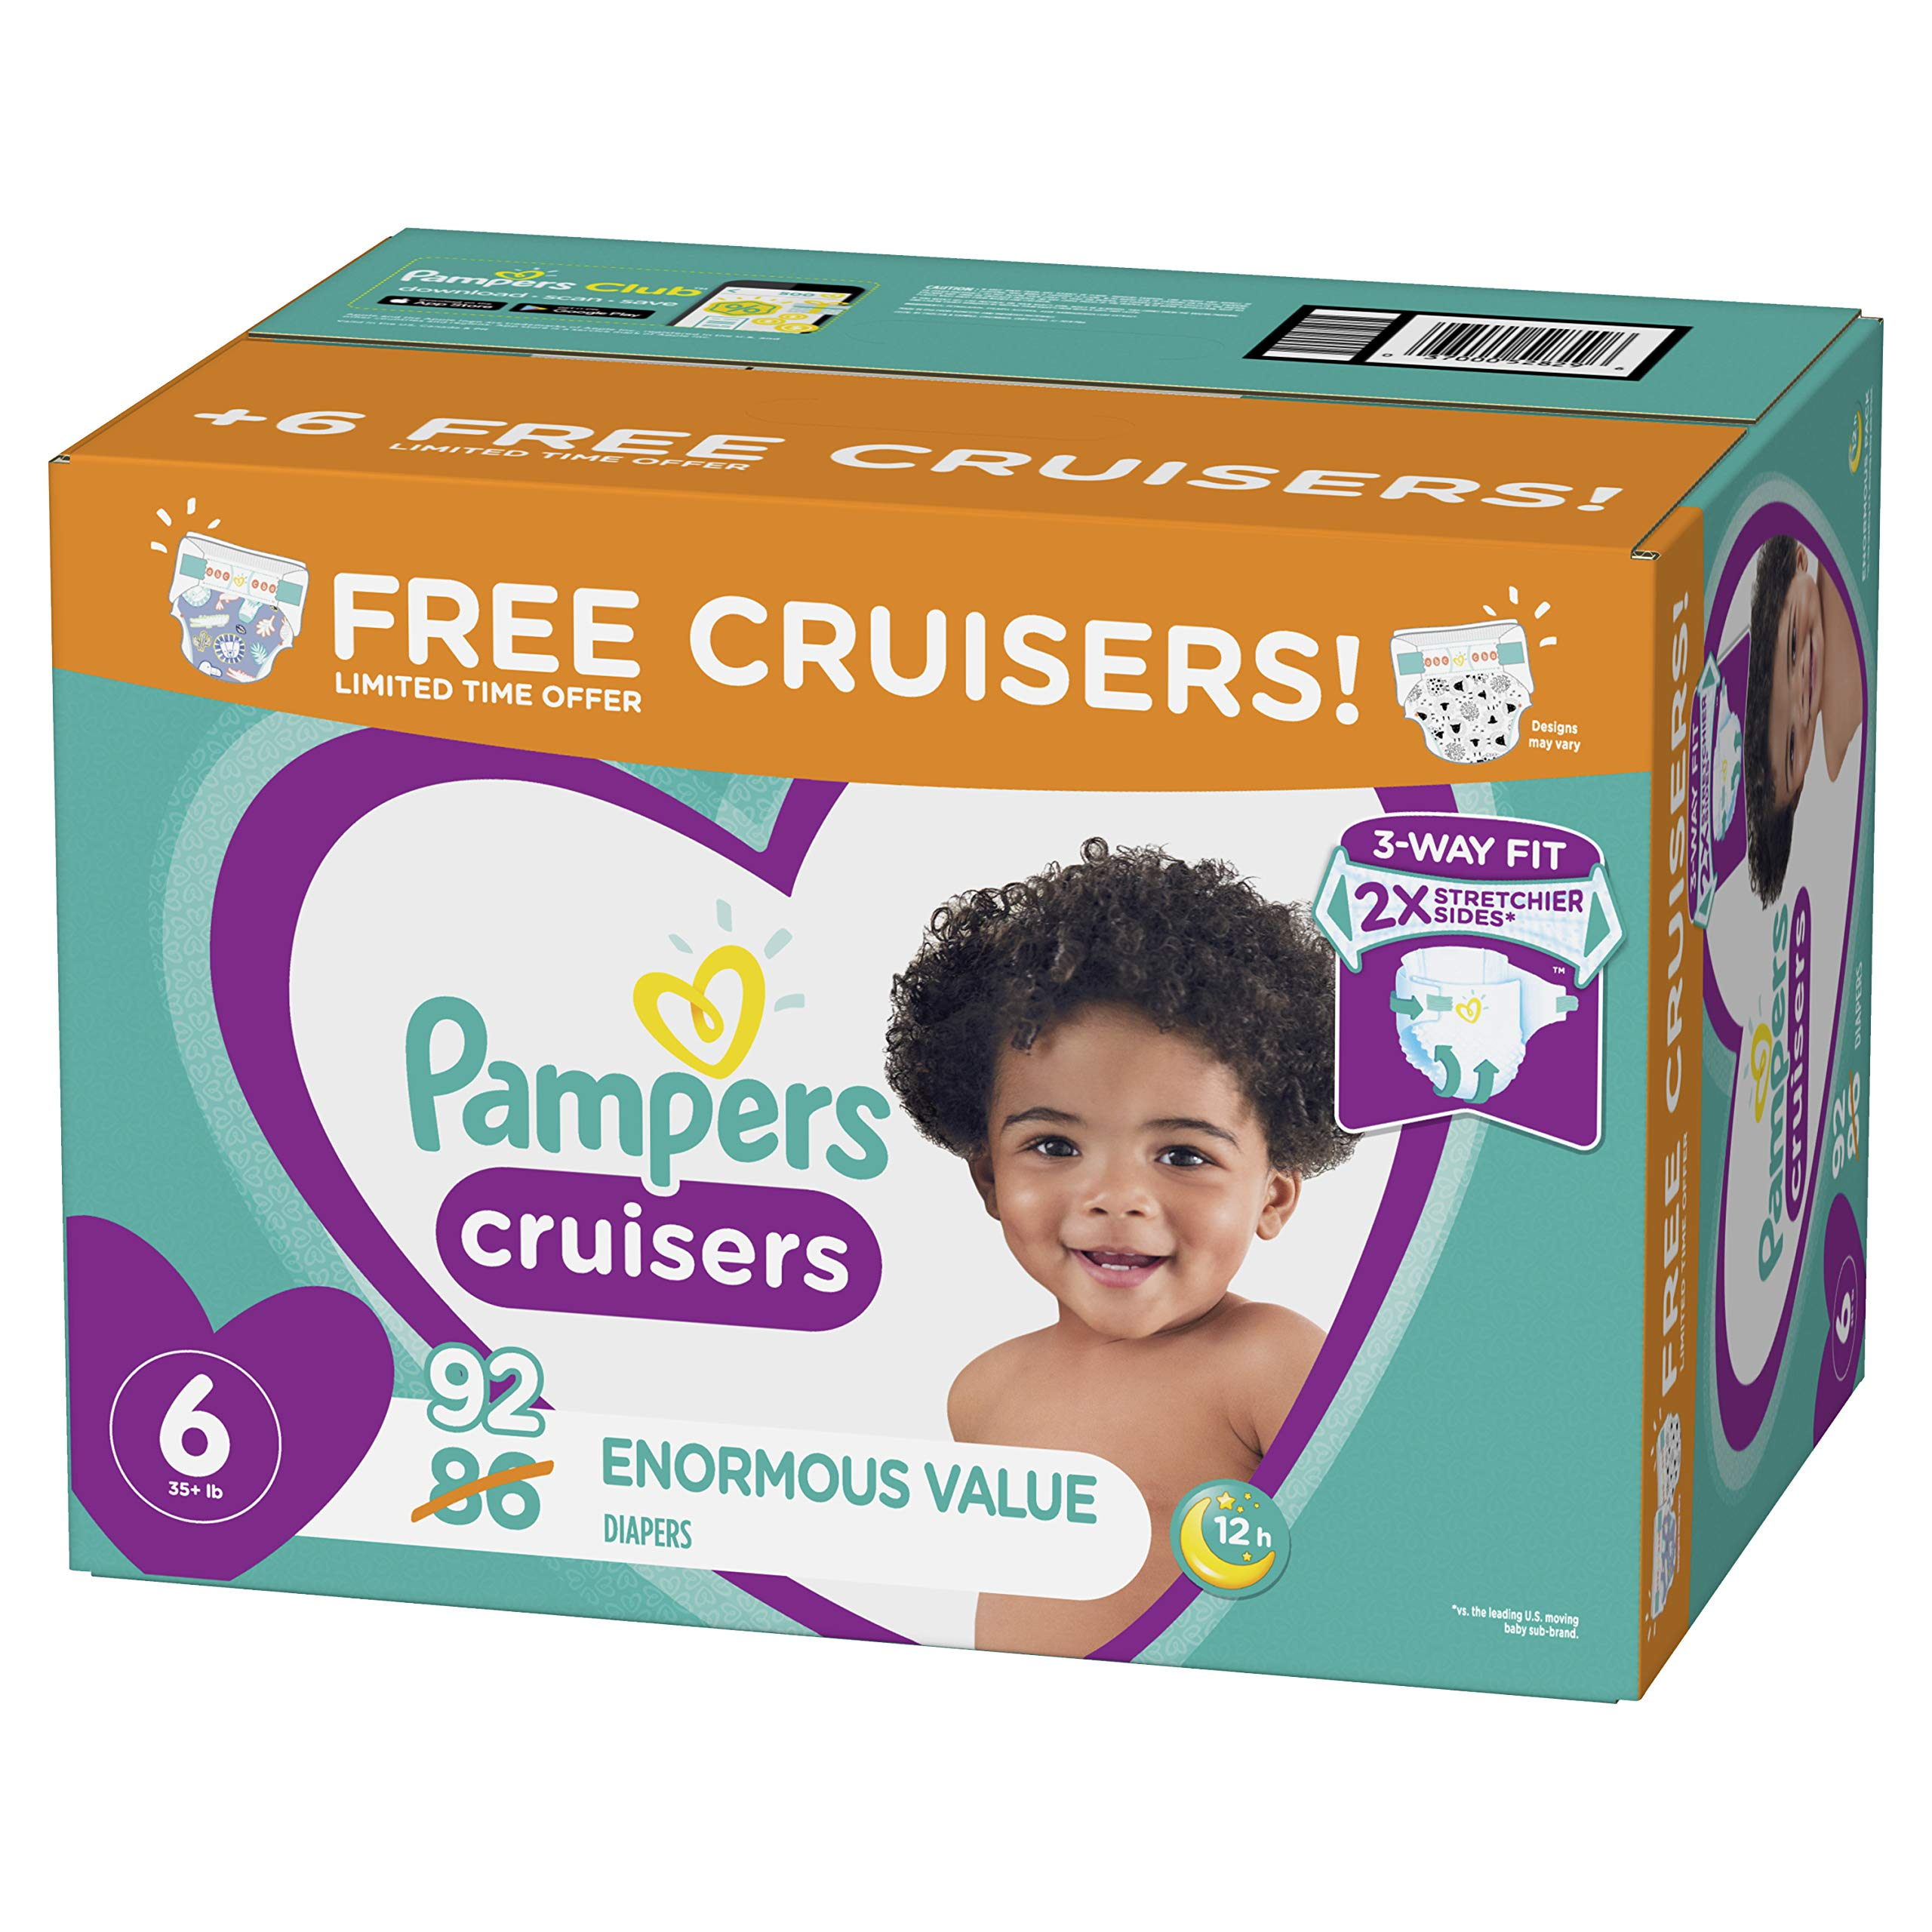 Diapers Size 6, 92 Count - Pampers Cruisers Disposable Baby Diapers, Enormous Pack, Plus Bonus Diapers by Pampers